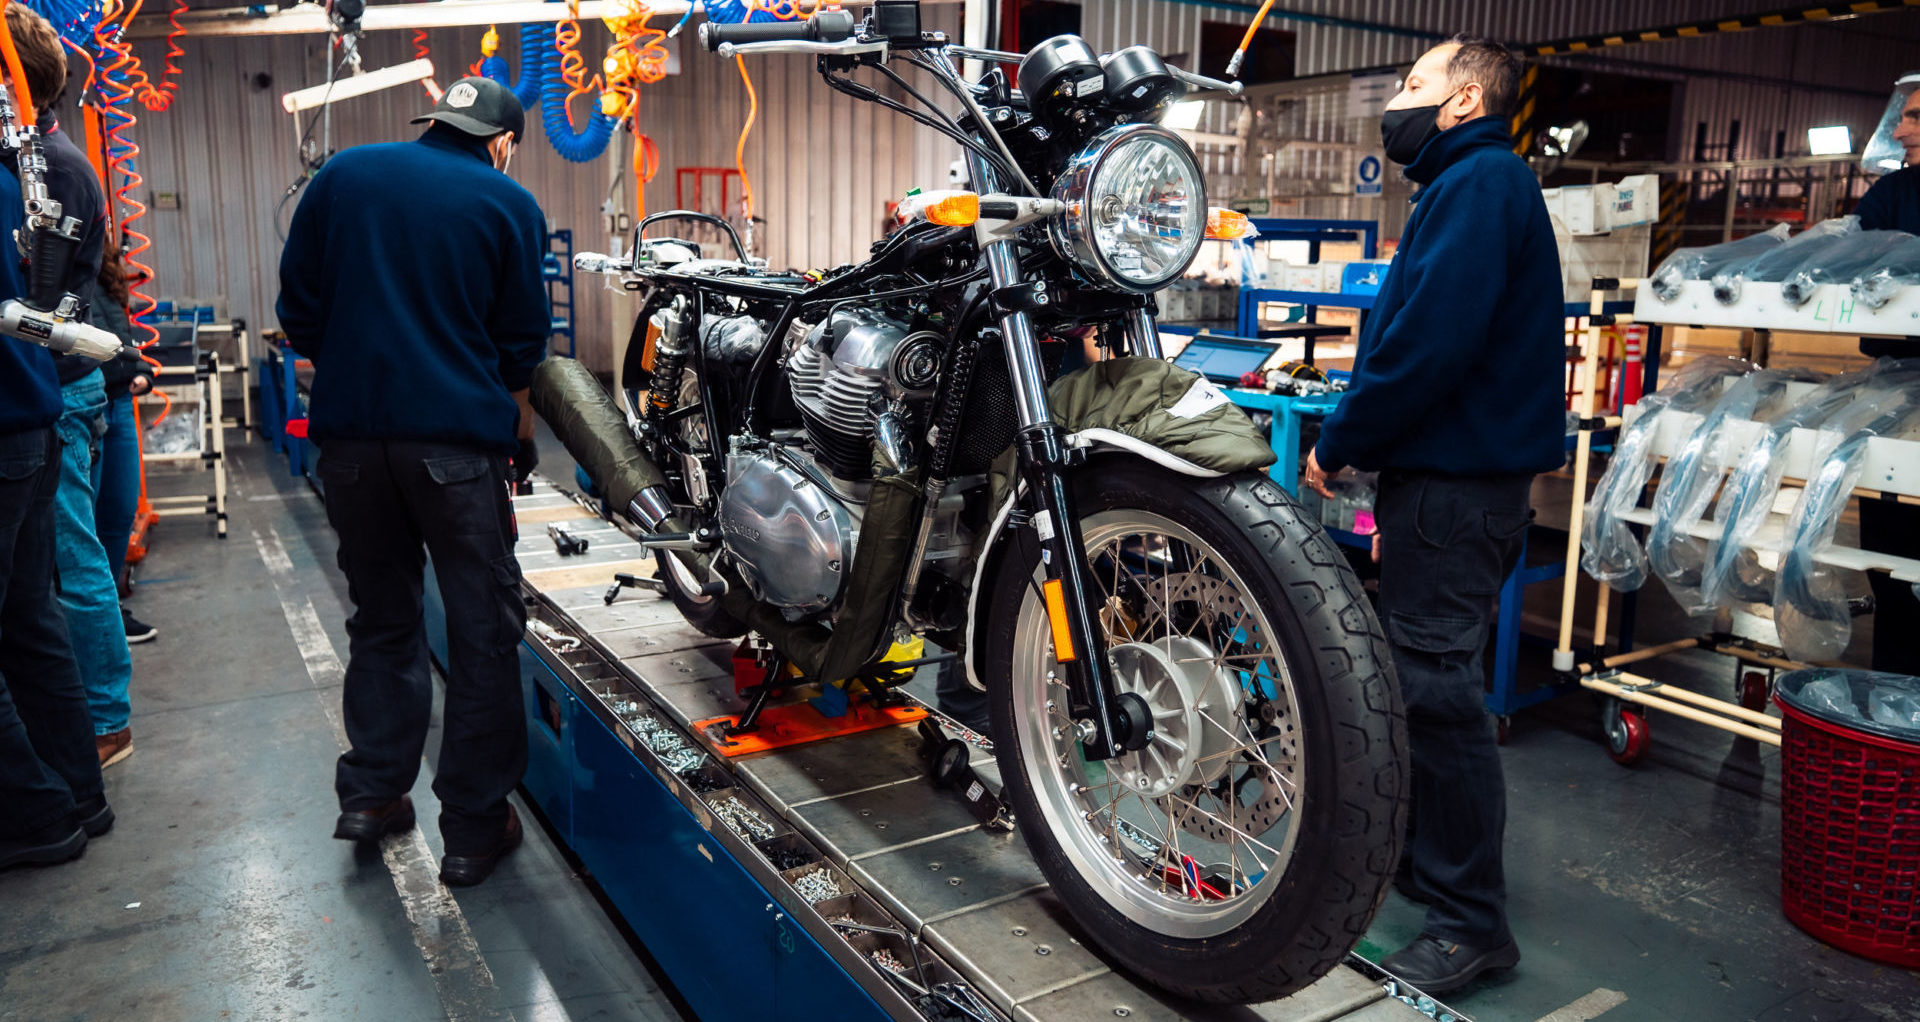 A Royal Enfield motorcycle on the assembly line in Argentina. Photo courtesy Royal Enfield.